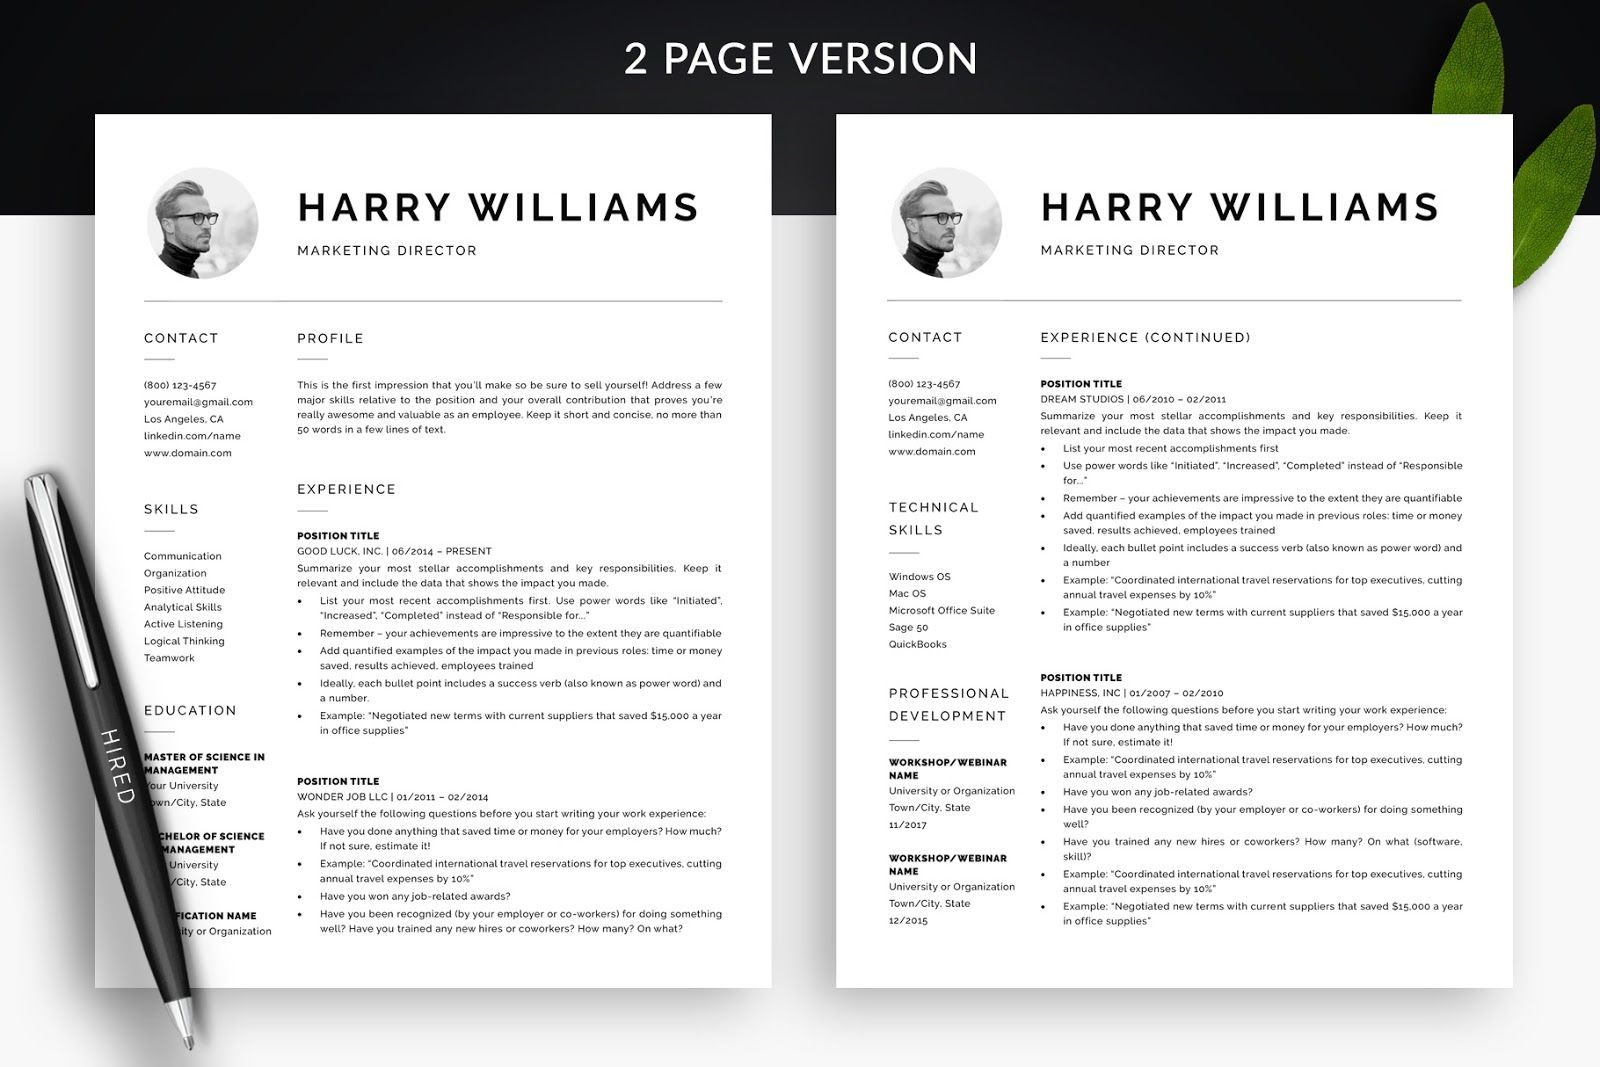 apple pages resume templates 2019 for 2020 career change cv examples graduate profile customer service job objective statement